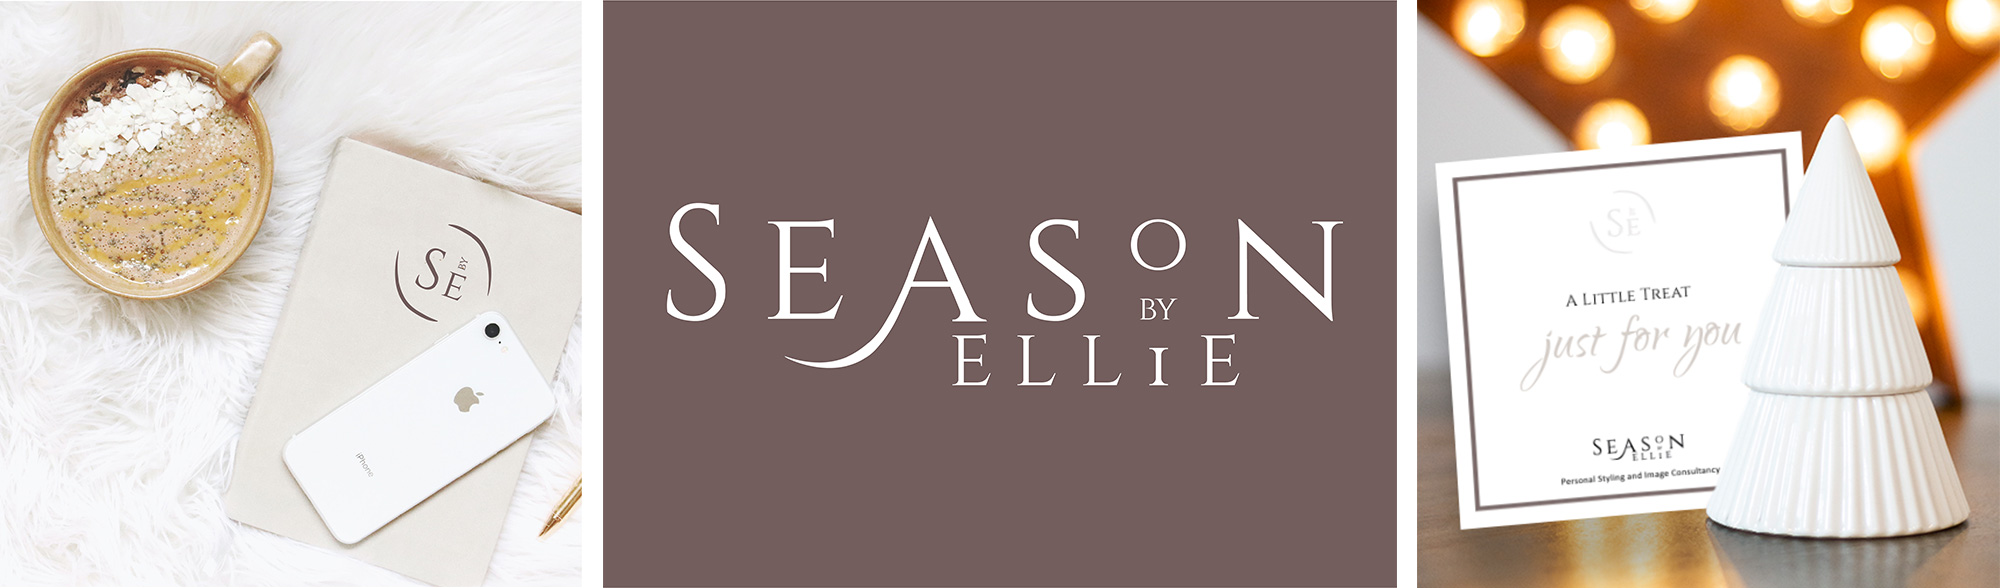 Brand and Identity for Personal Stylist and Image Consultant, Season by Ellie